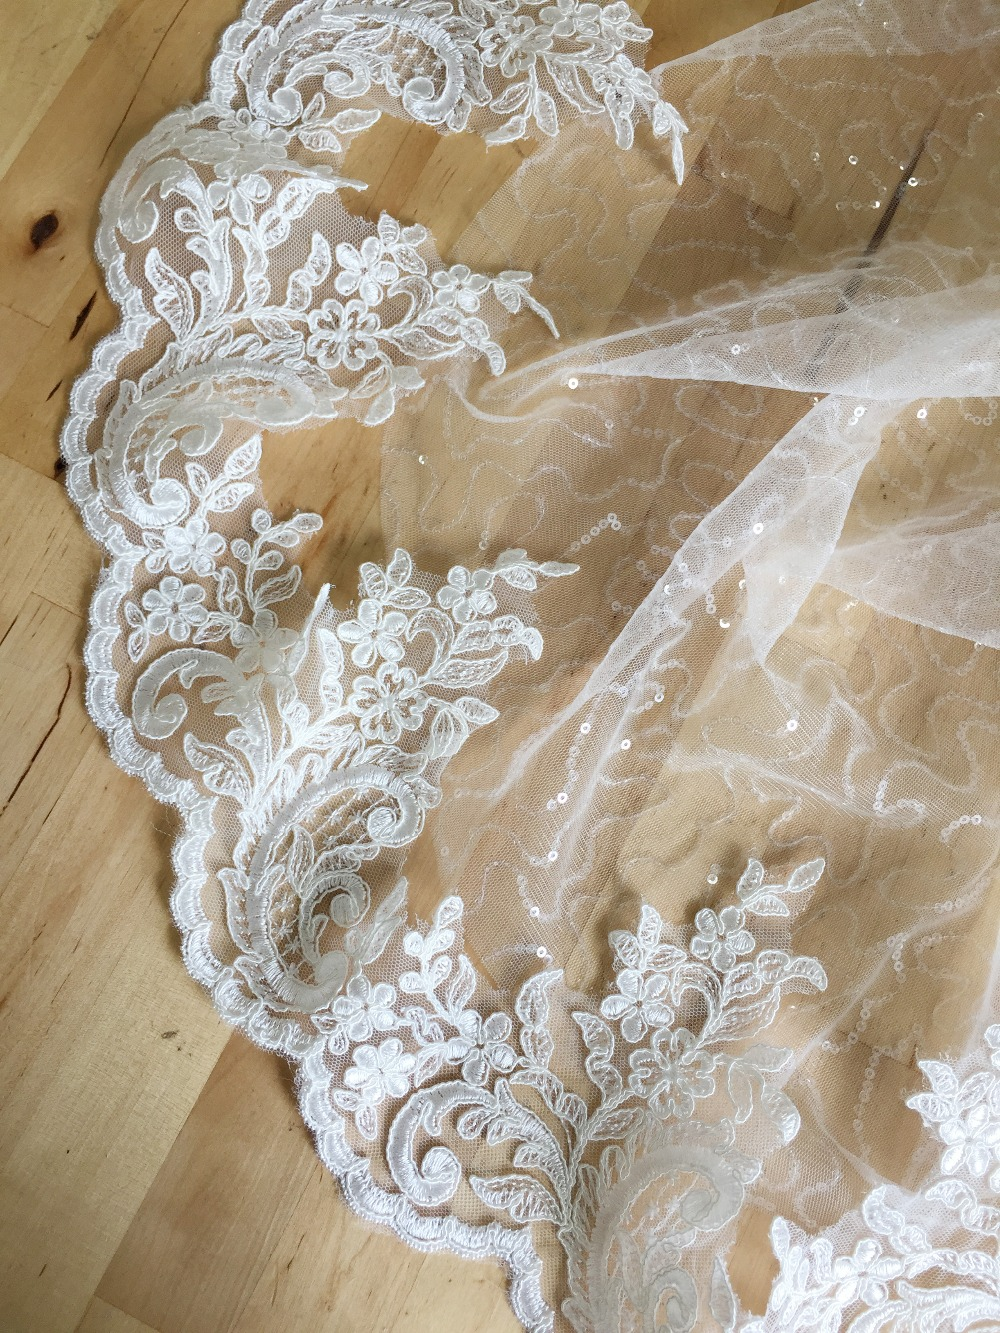 1 Yard 16cm Wide Floral Embroidery Bridal Lace Trim For Wedding Veil Dress Ivory